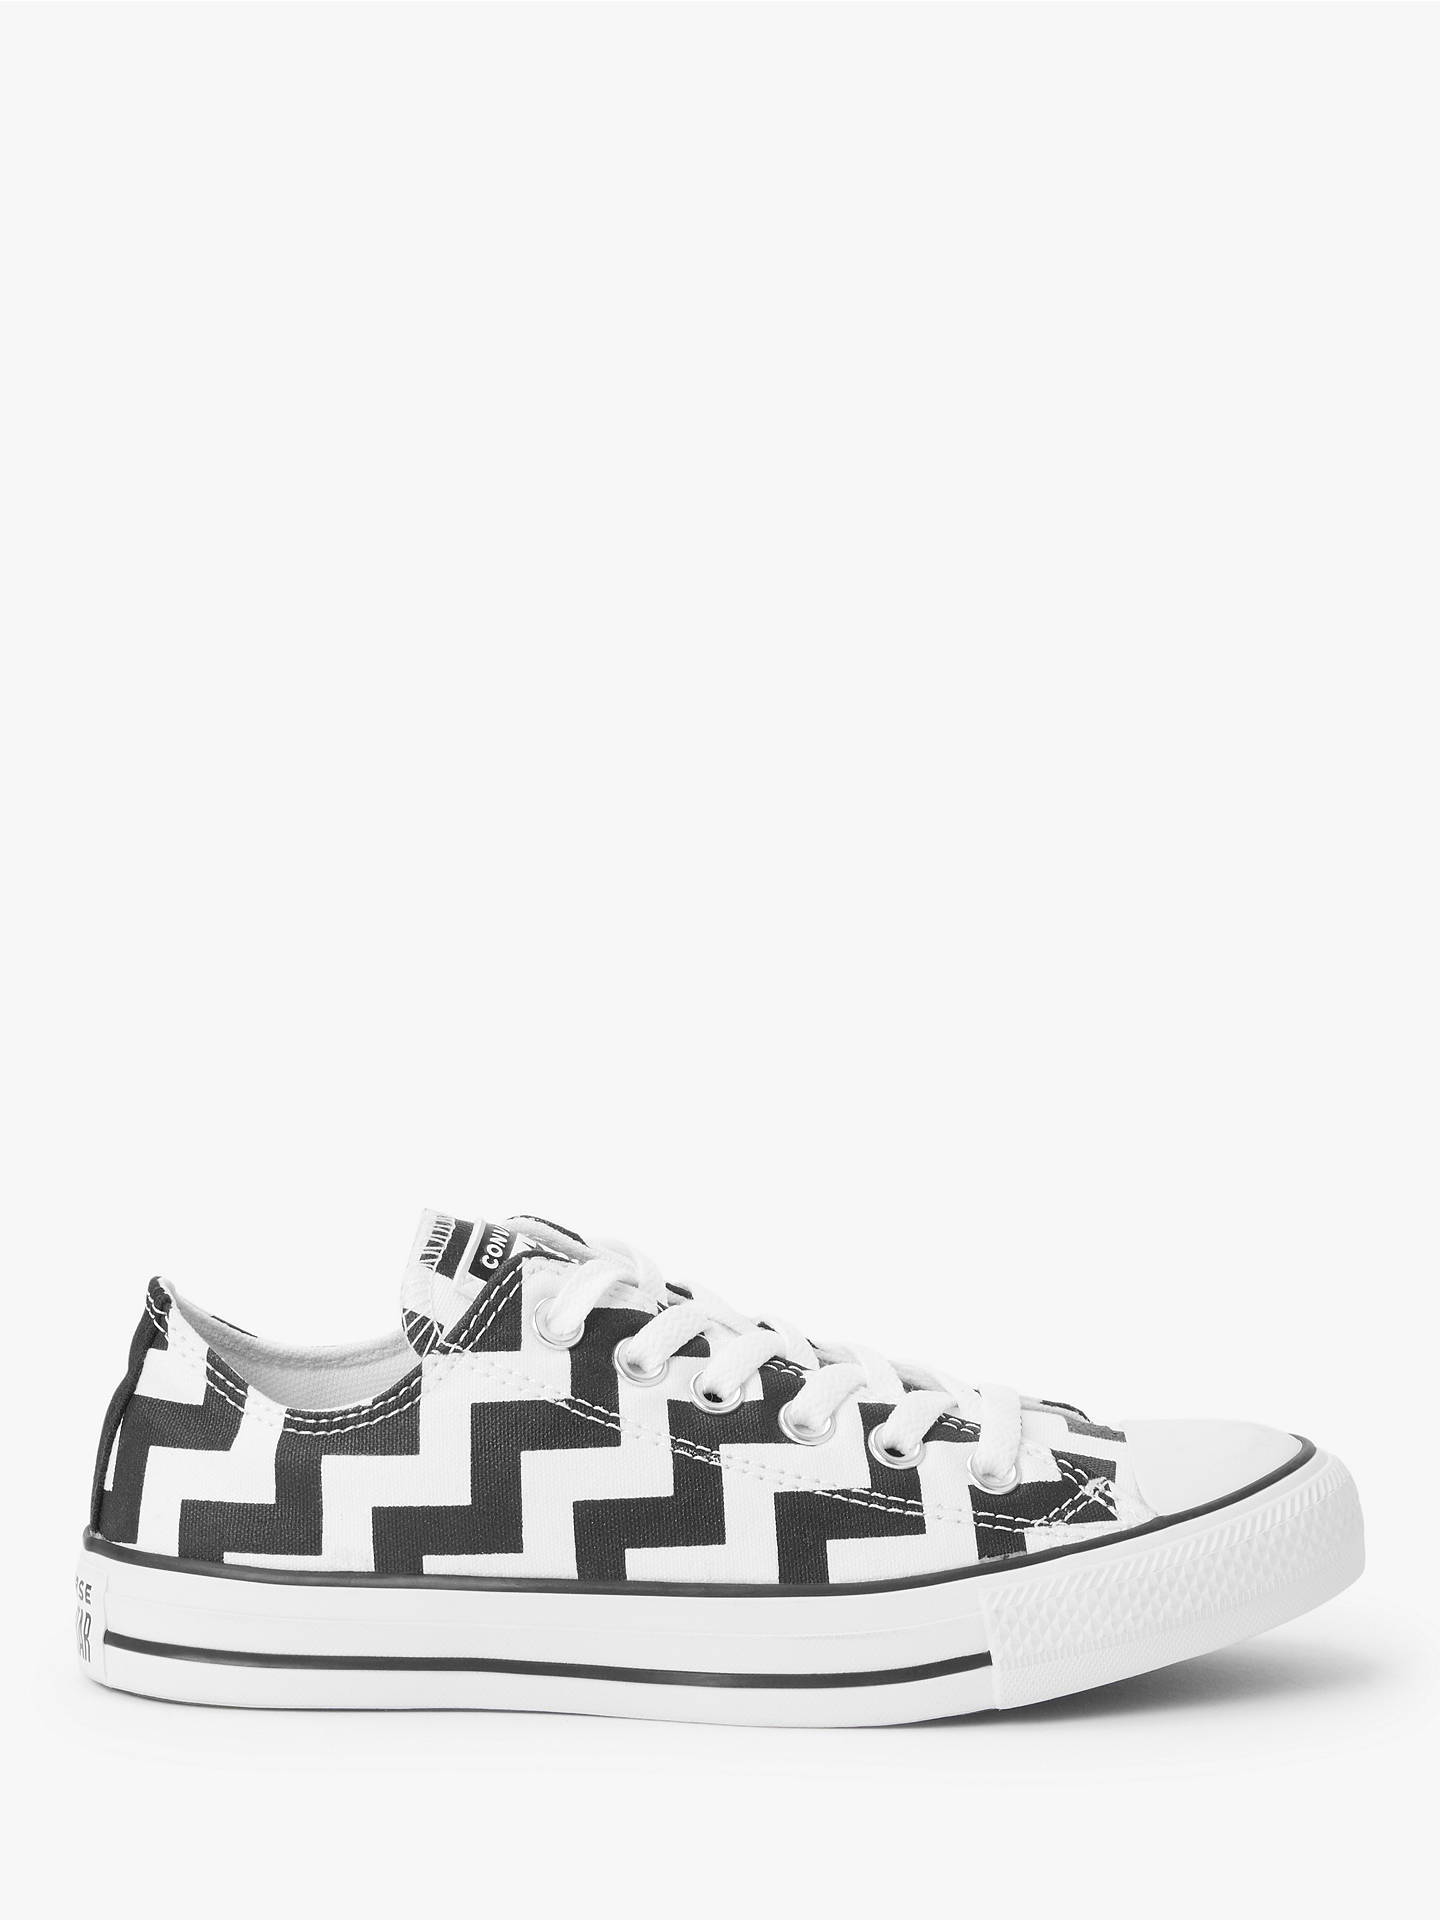 Buy Converse Chuck Taylor All Star Glam Dunk Low-Top Trainers, Black/White, 5 Online at johnlewis.com